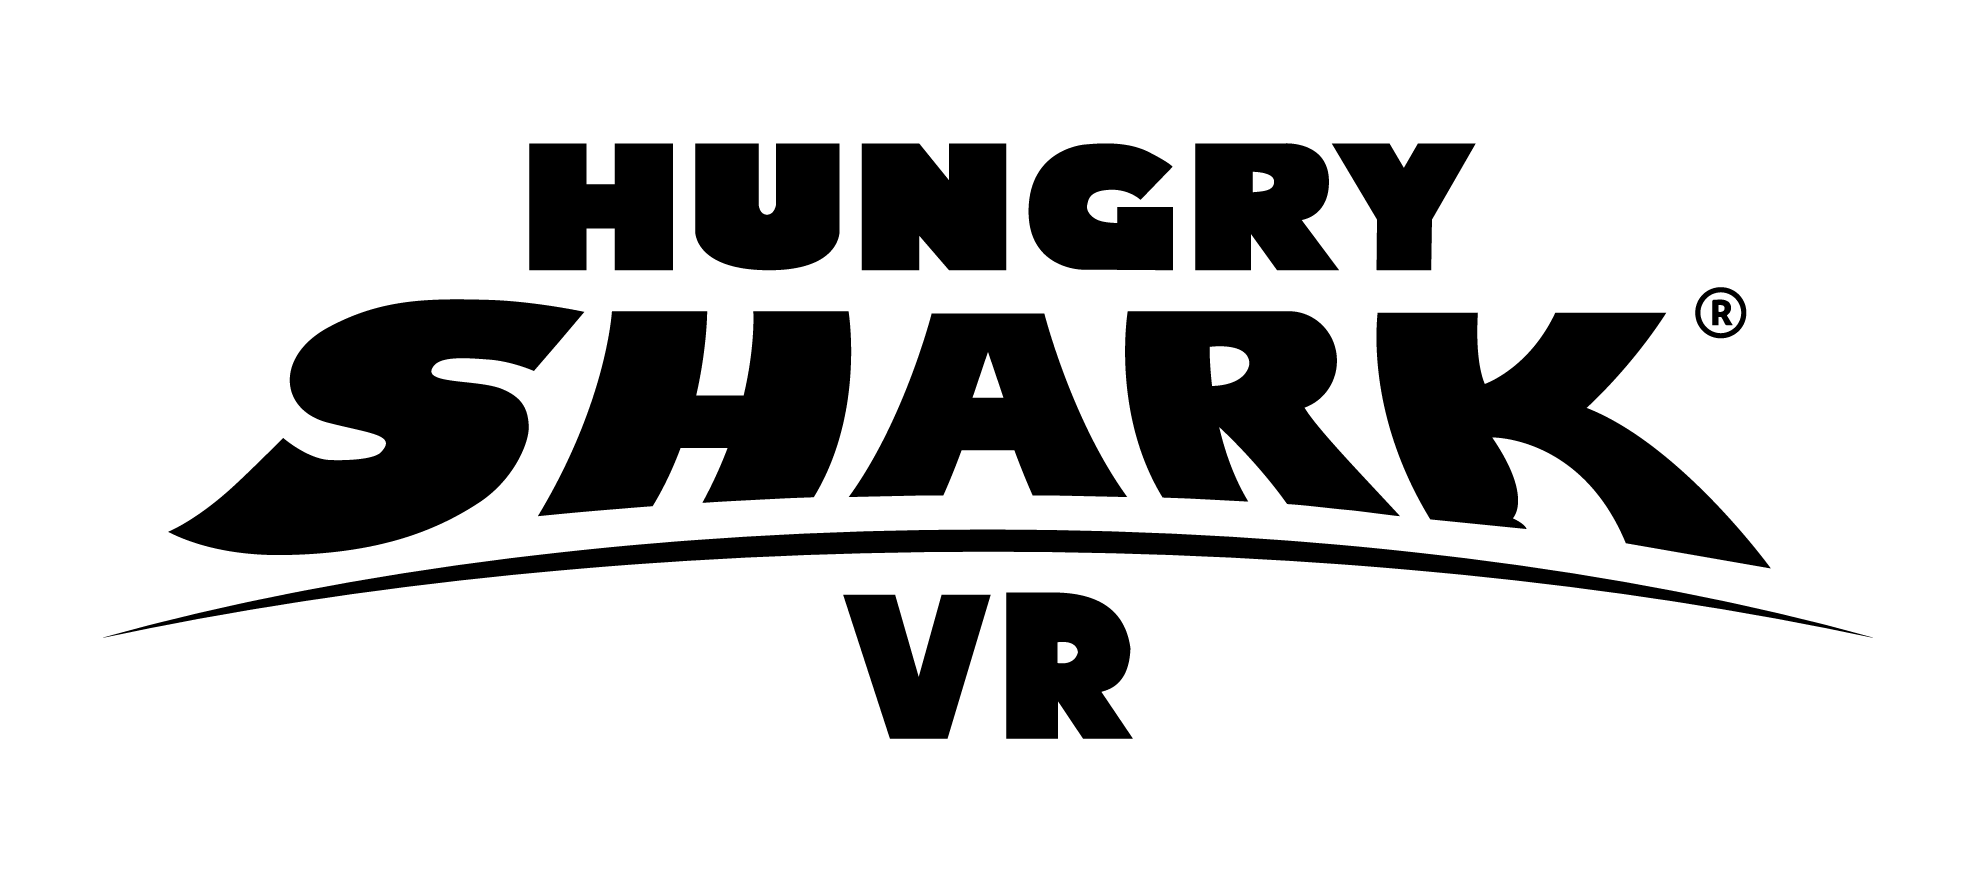 Hungry Shark Vr Now Available On Daydream